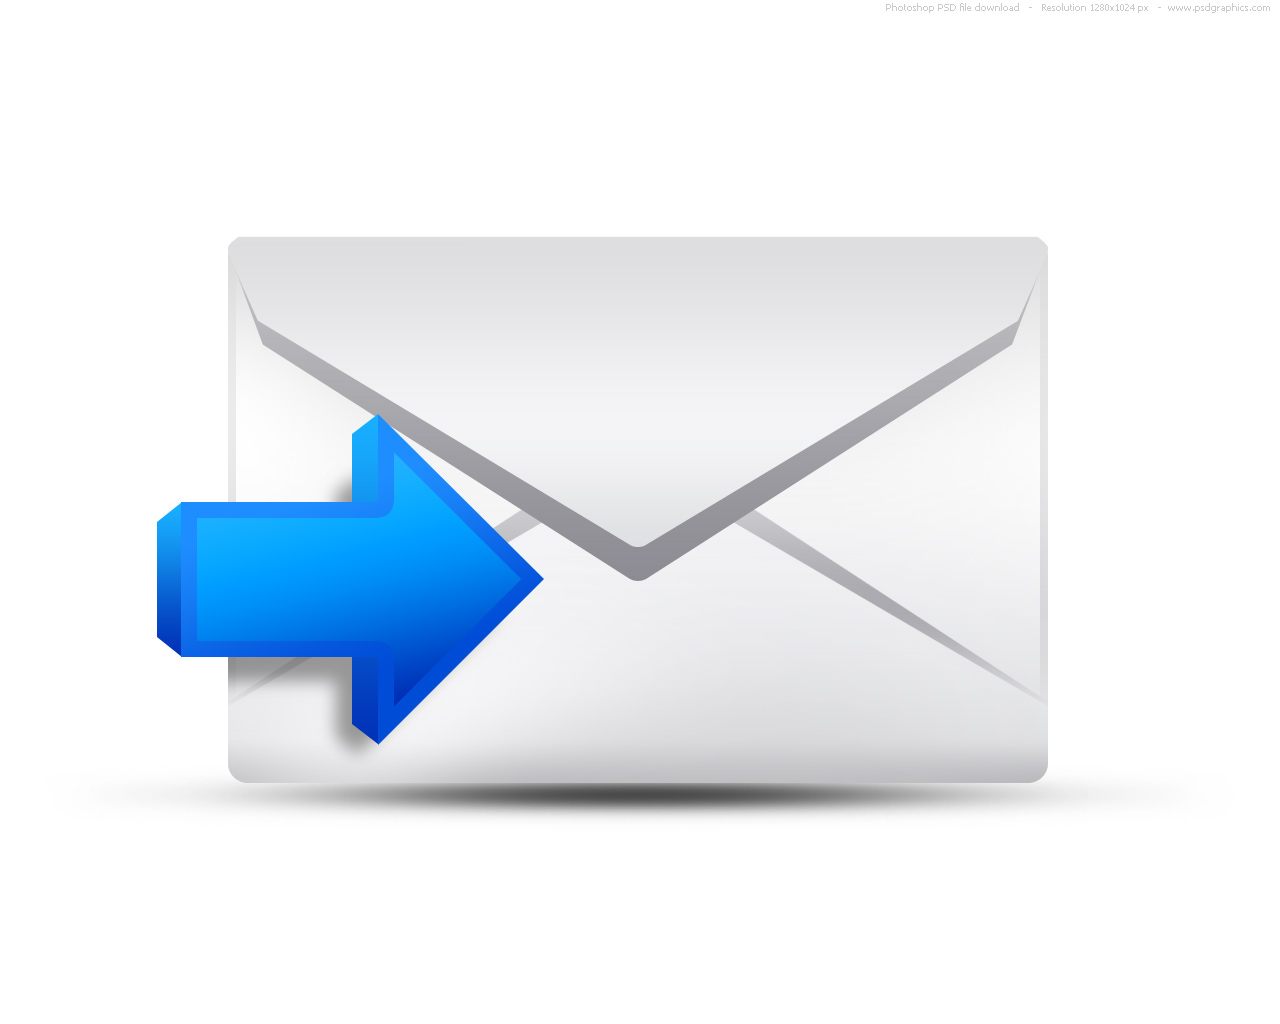 Incoming email icon